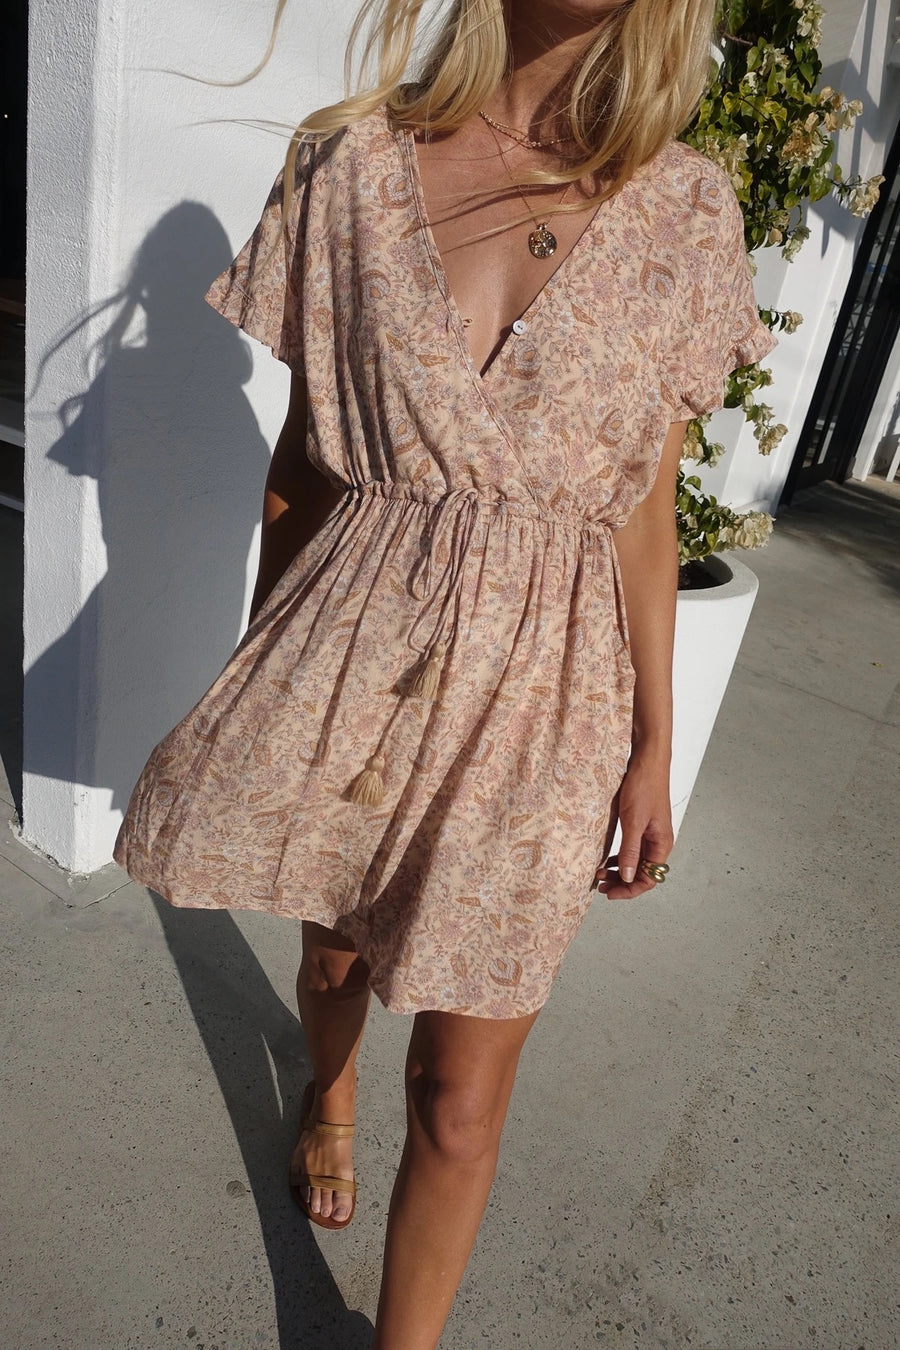 Sunlight Mini Dress - Rośe